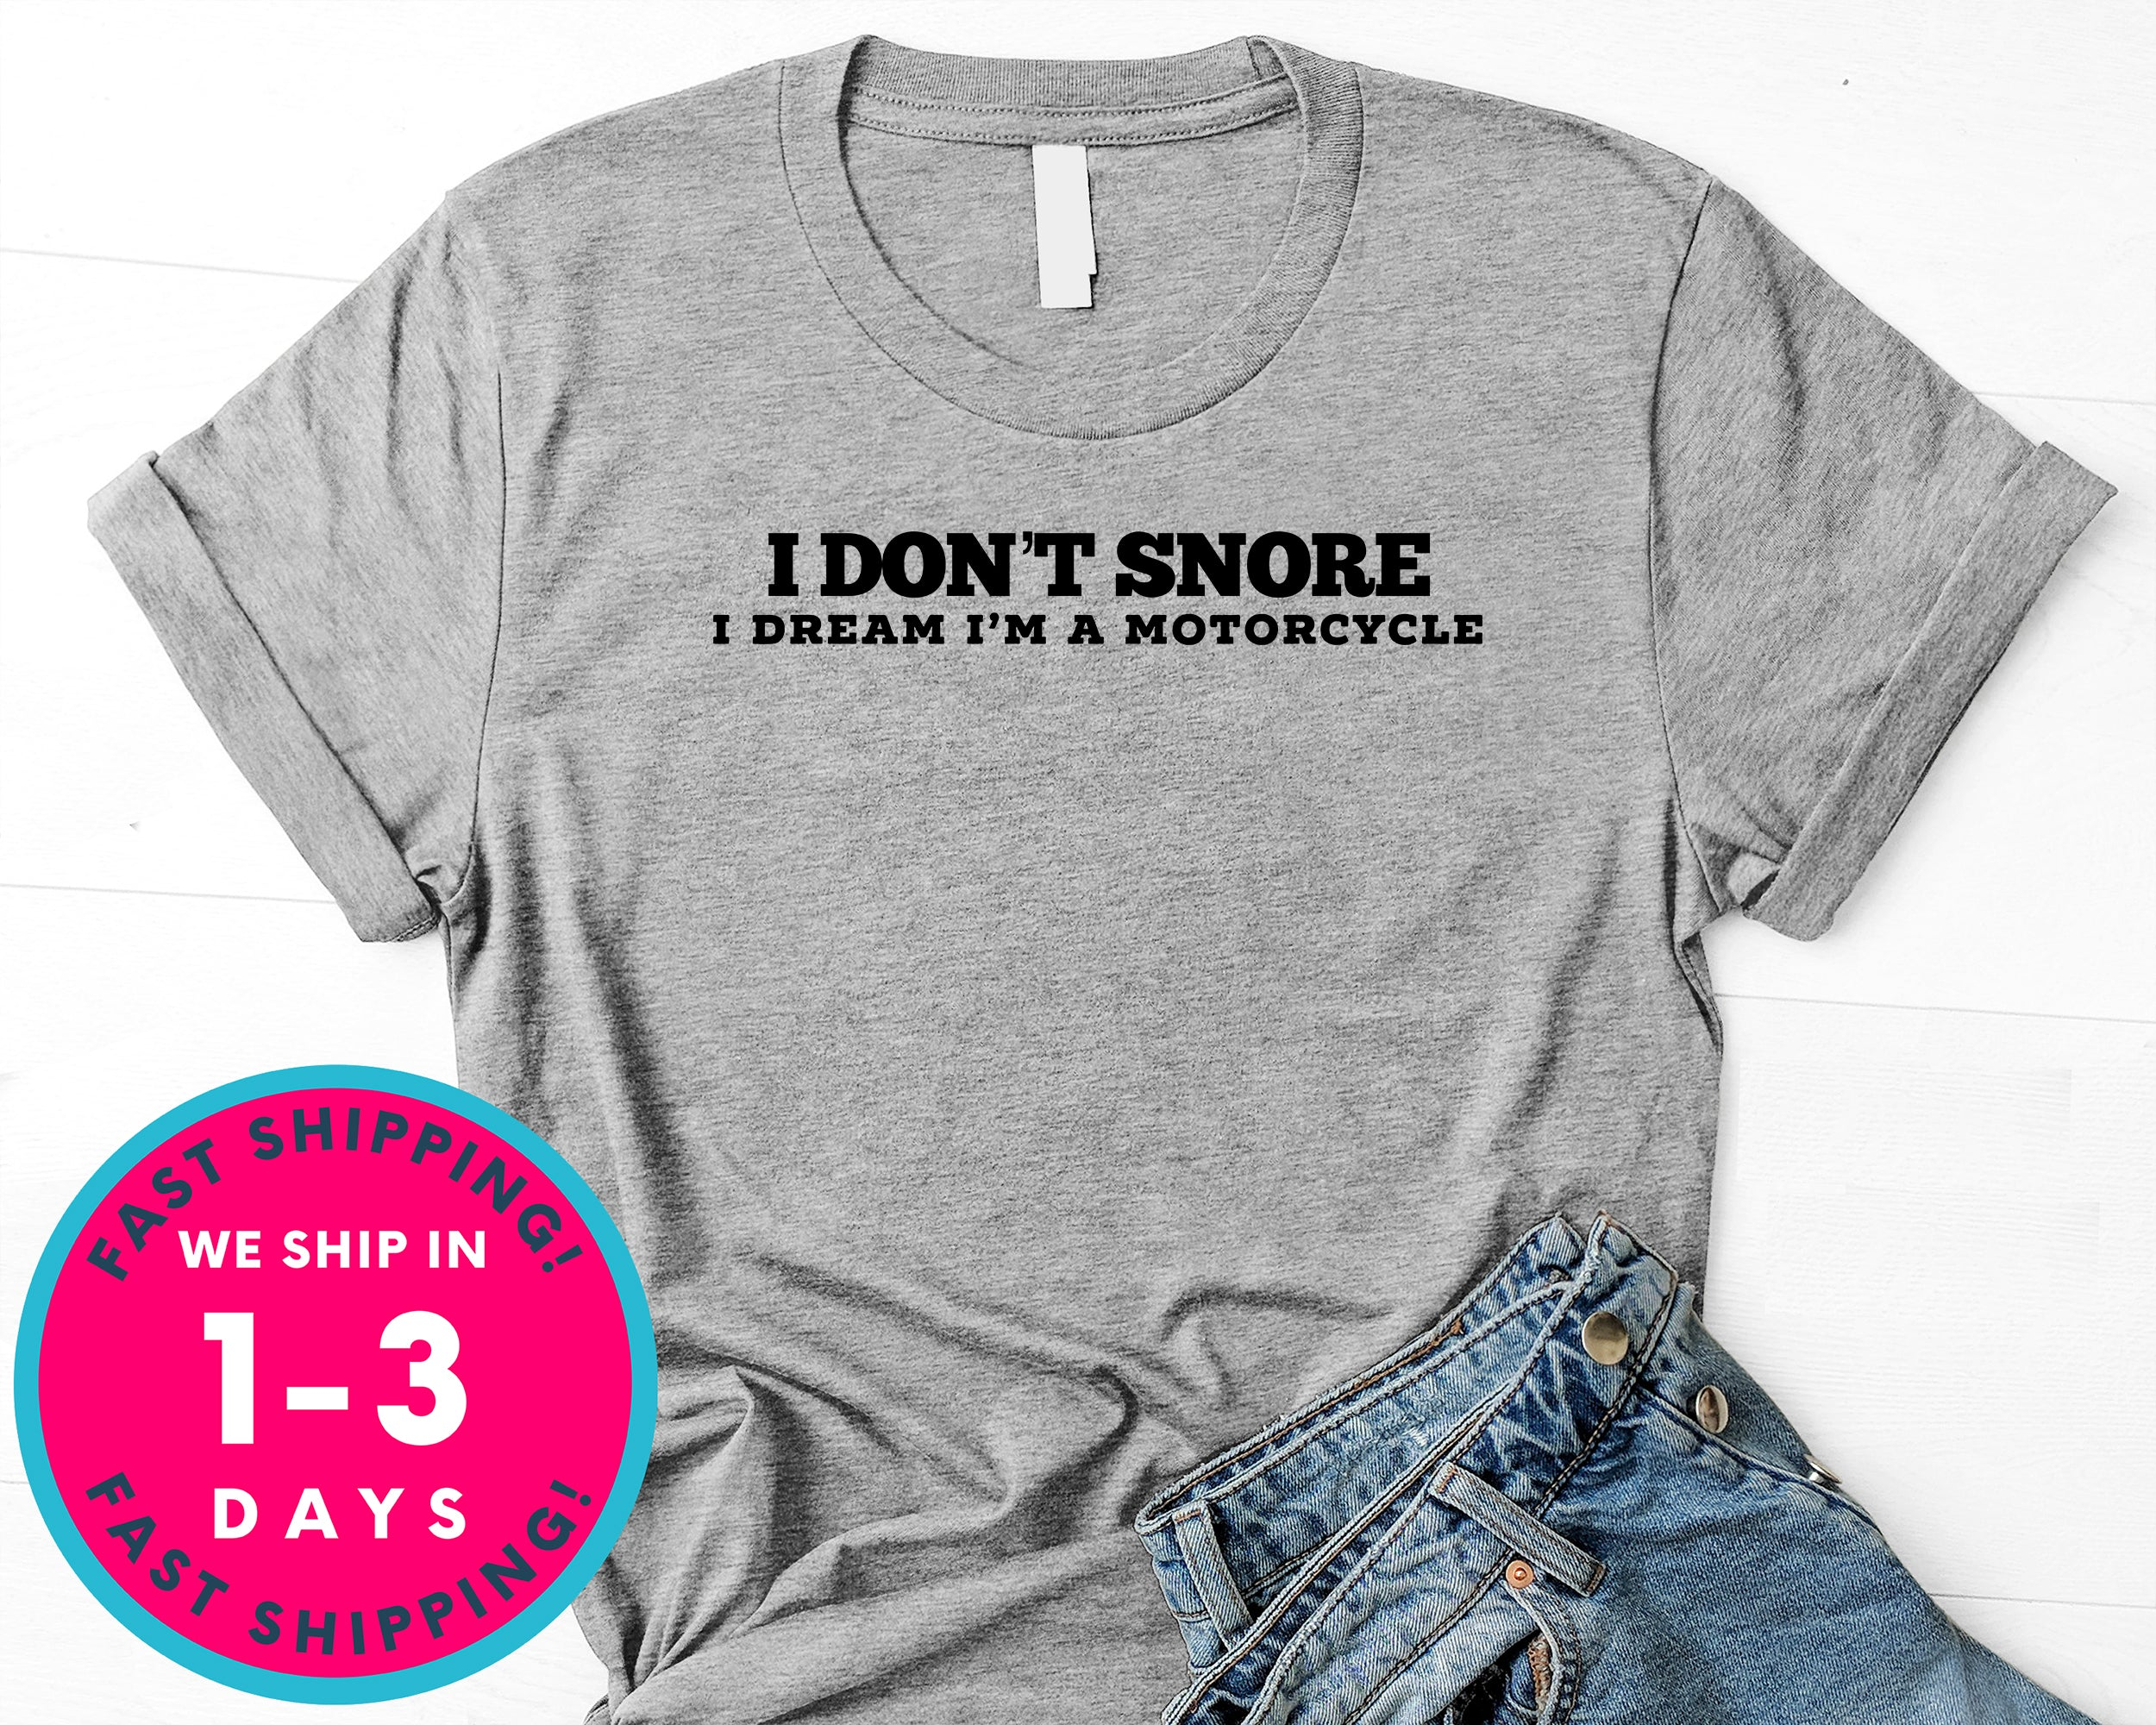 I Don't Snore I Dream Im A Motorcycle T-Shirt - Funny Humor Shirt